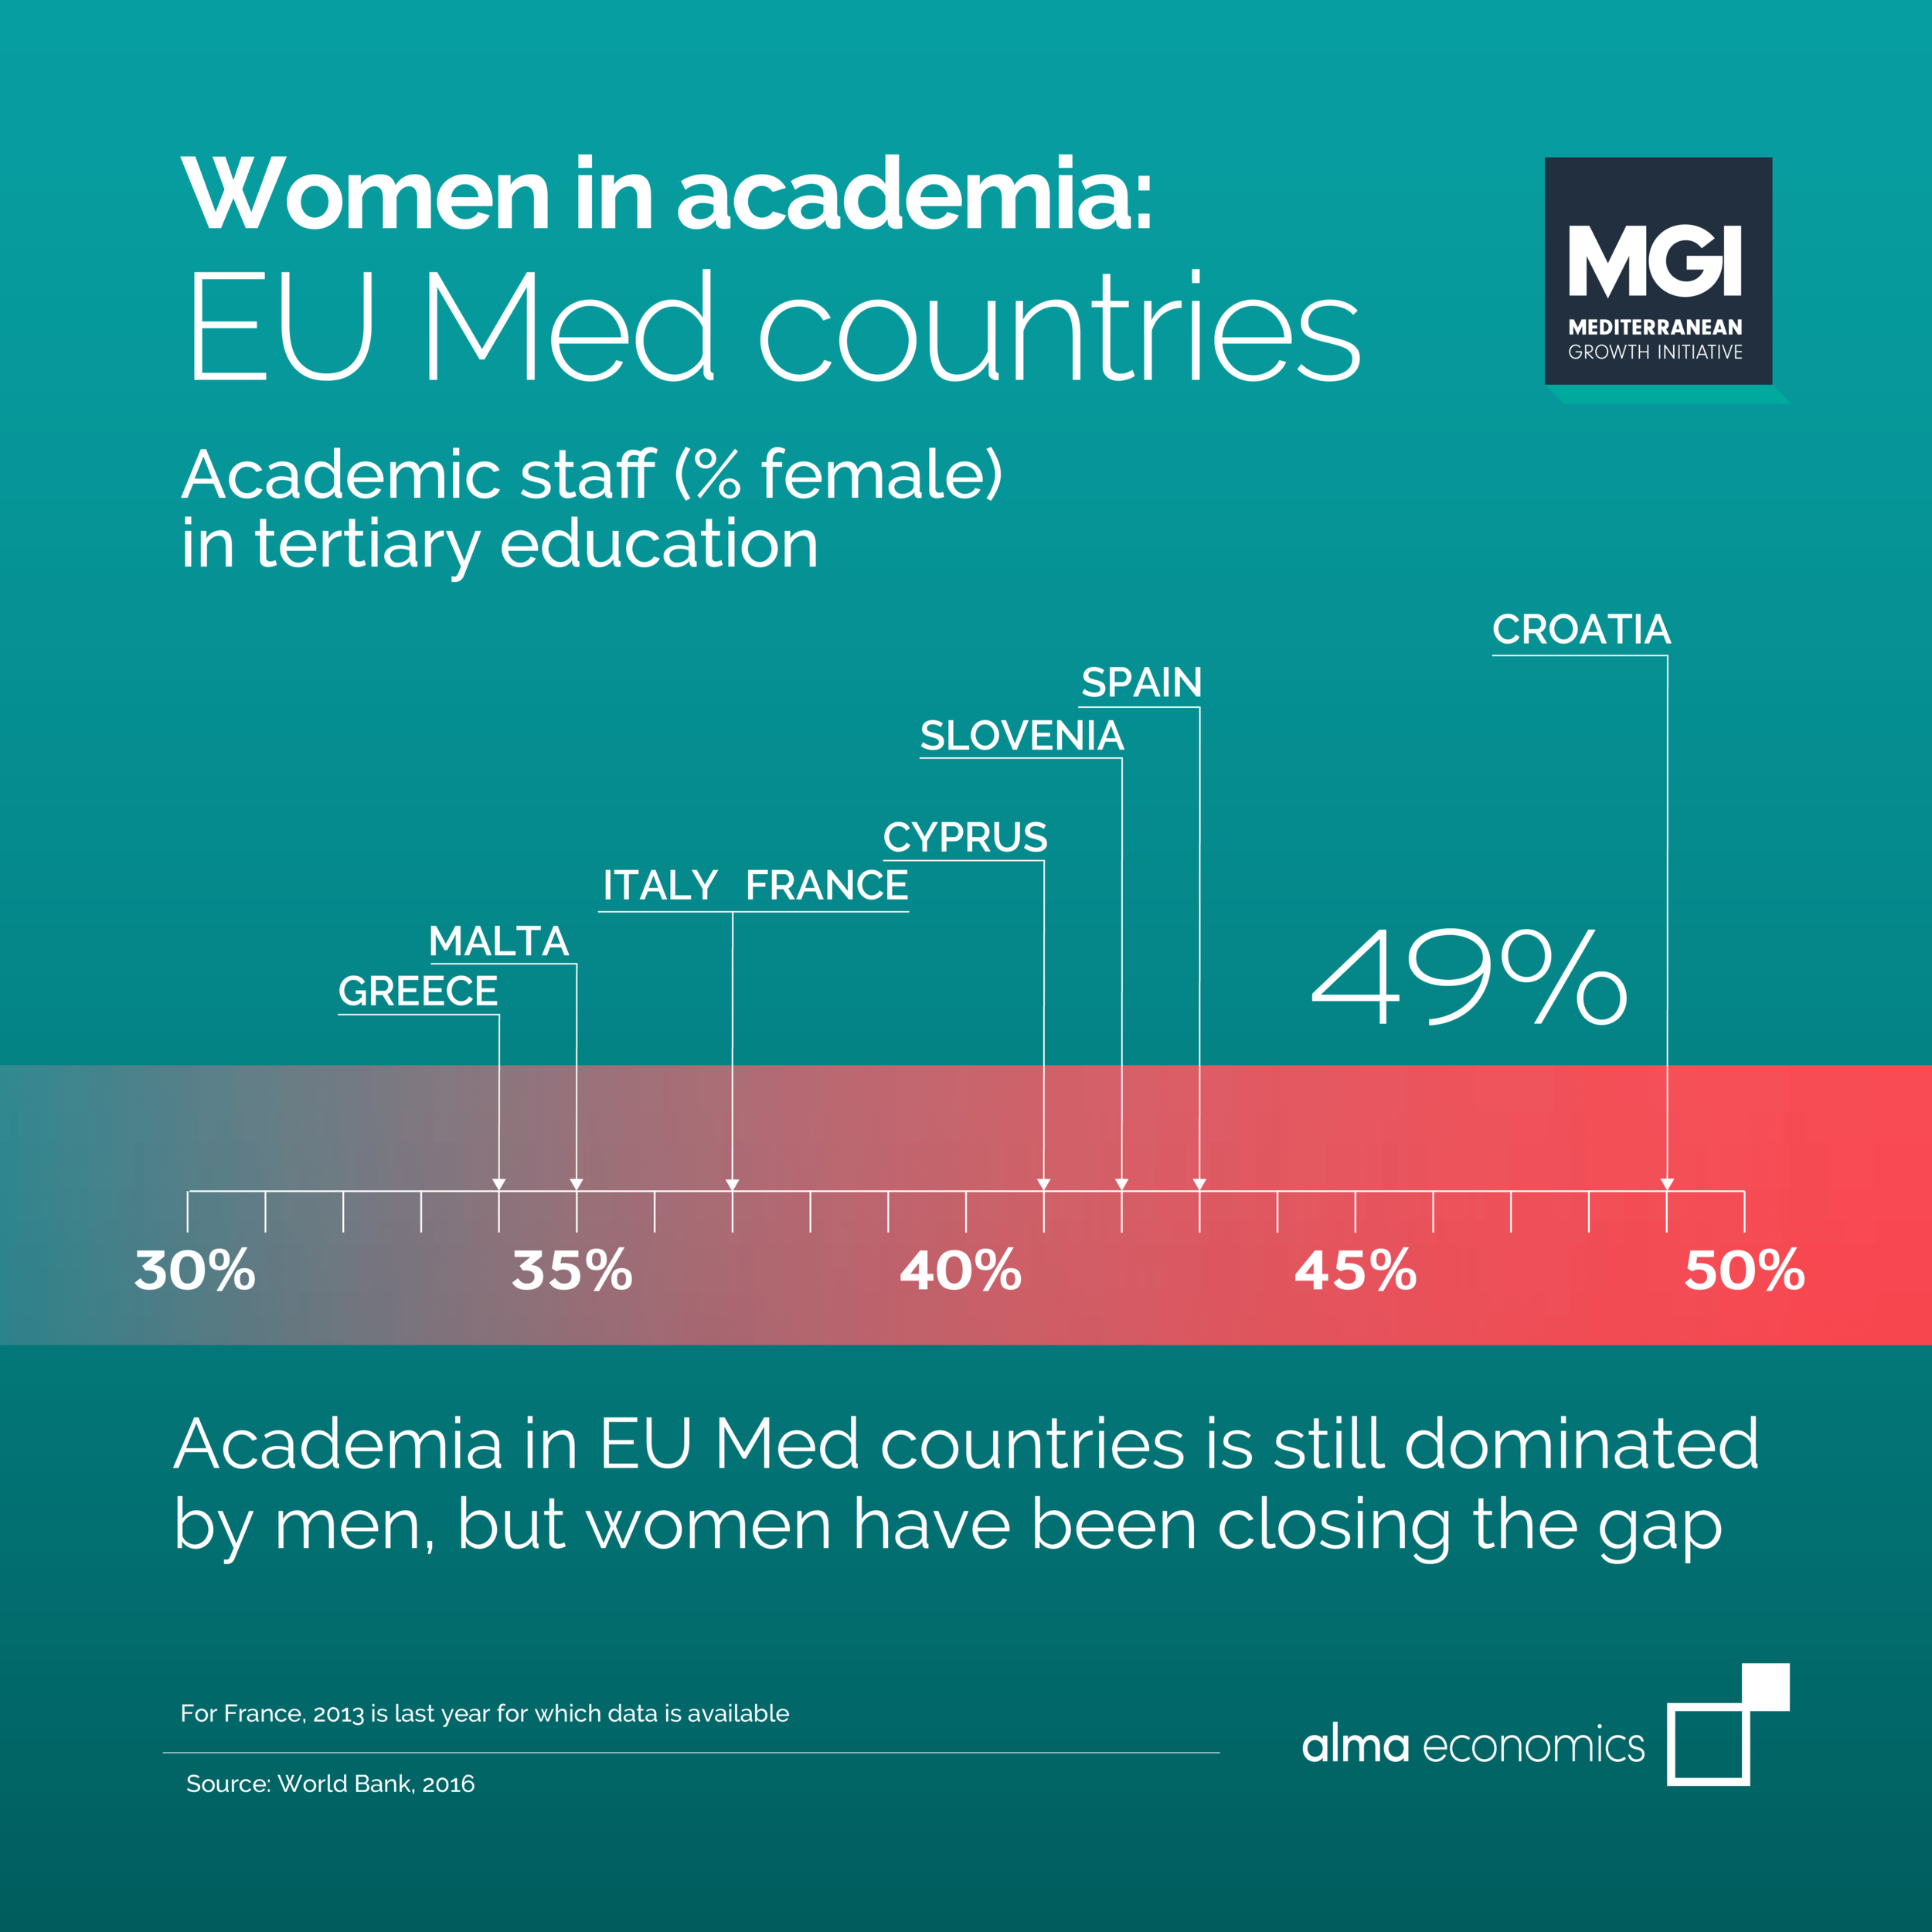 Women in academia: EU Med countries - Academia in EU Med countries is still dominated by men, but women have been closing the gap